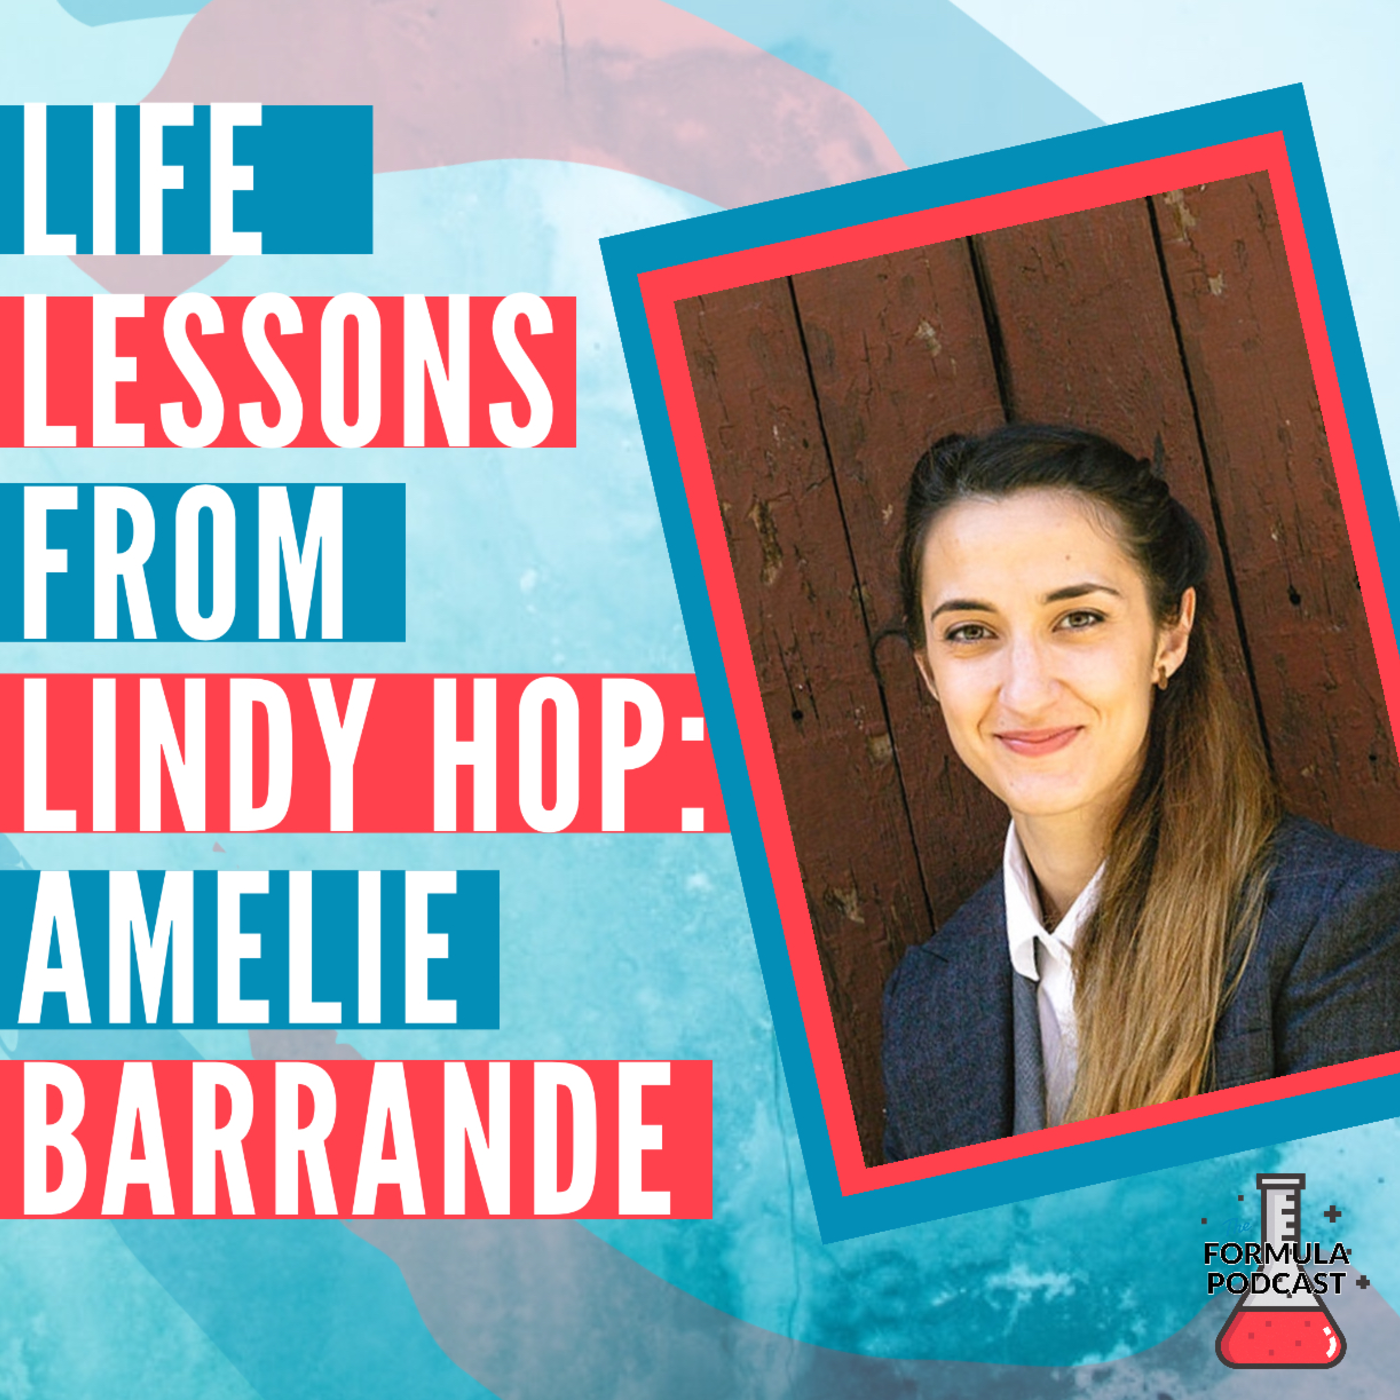 Life Lessons from Lindy Hop Part 3: Amélie Barrande